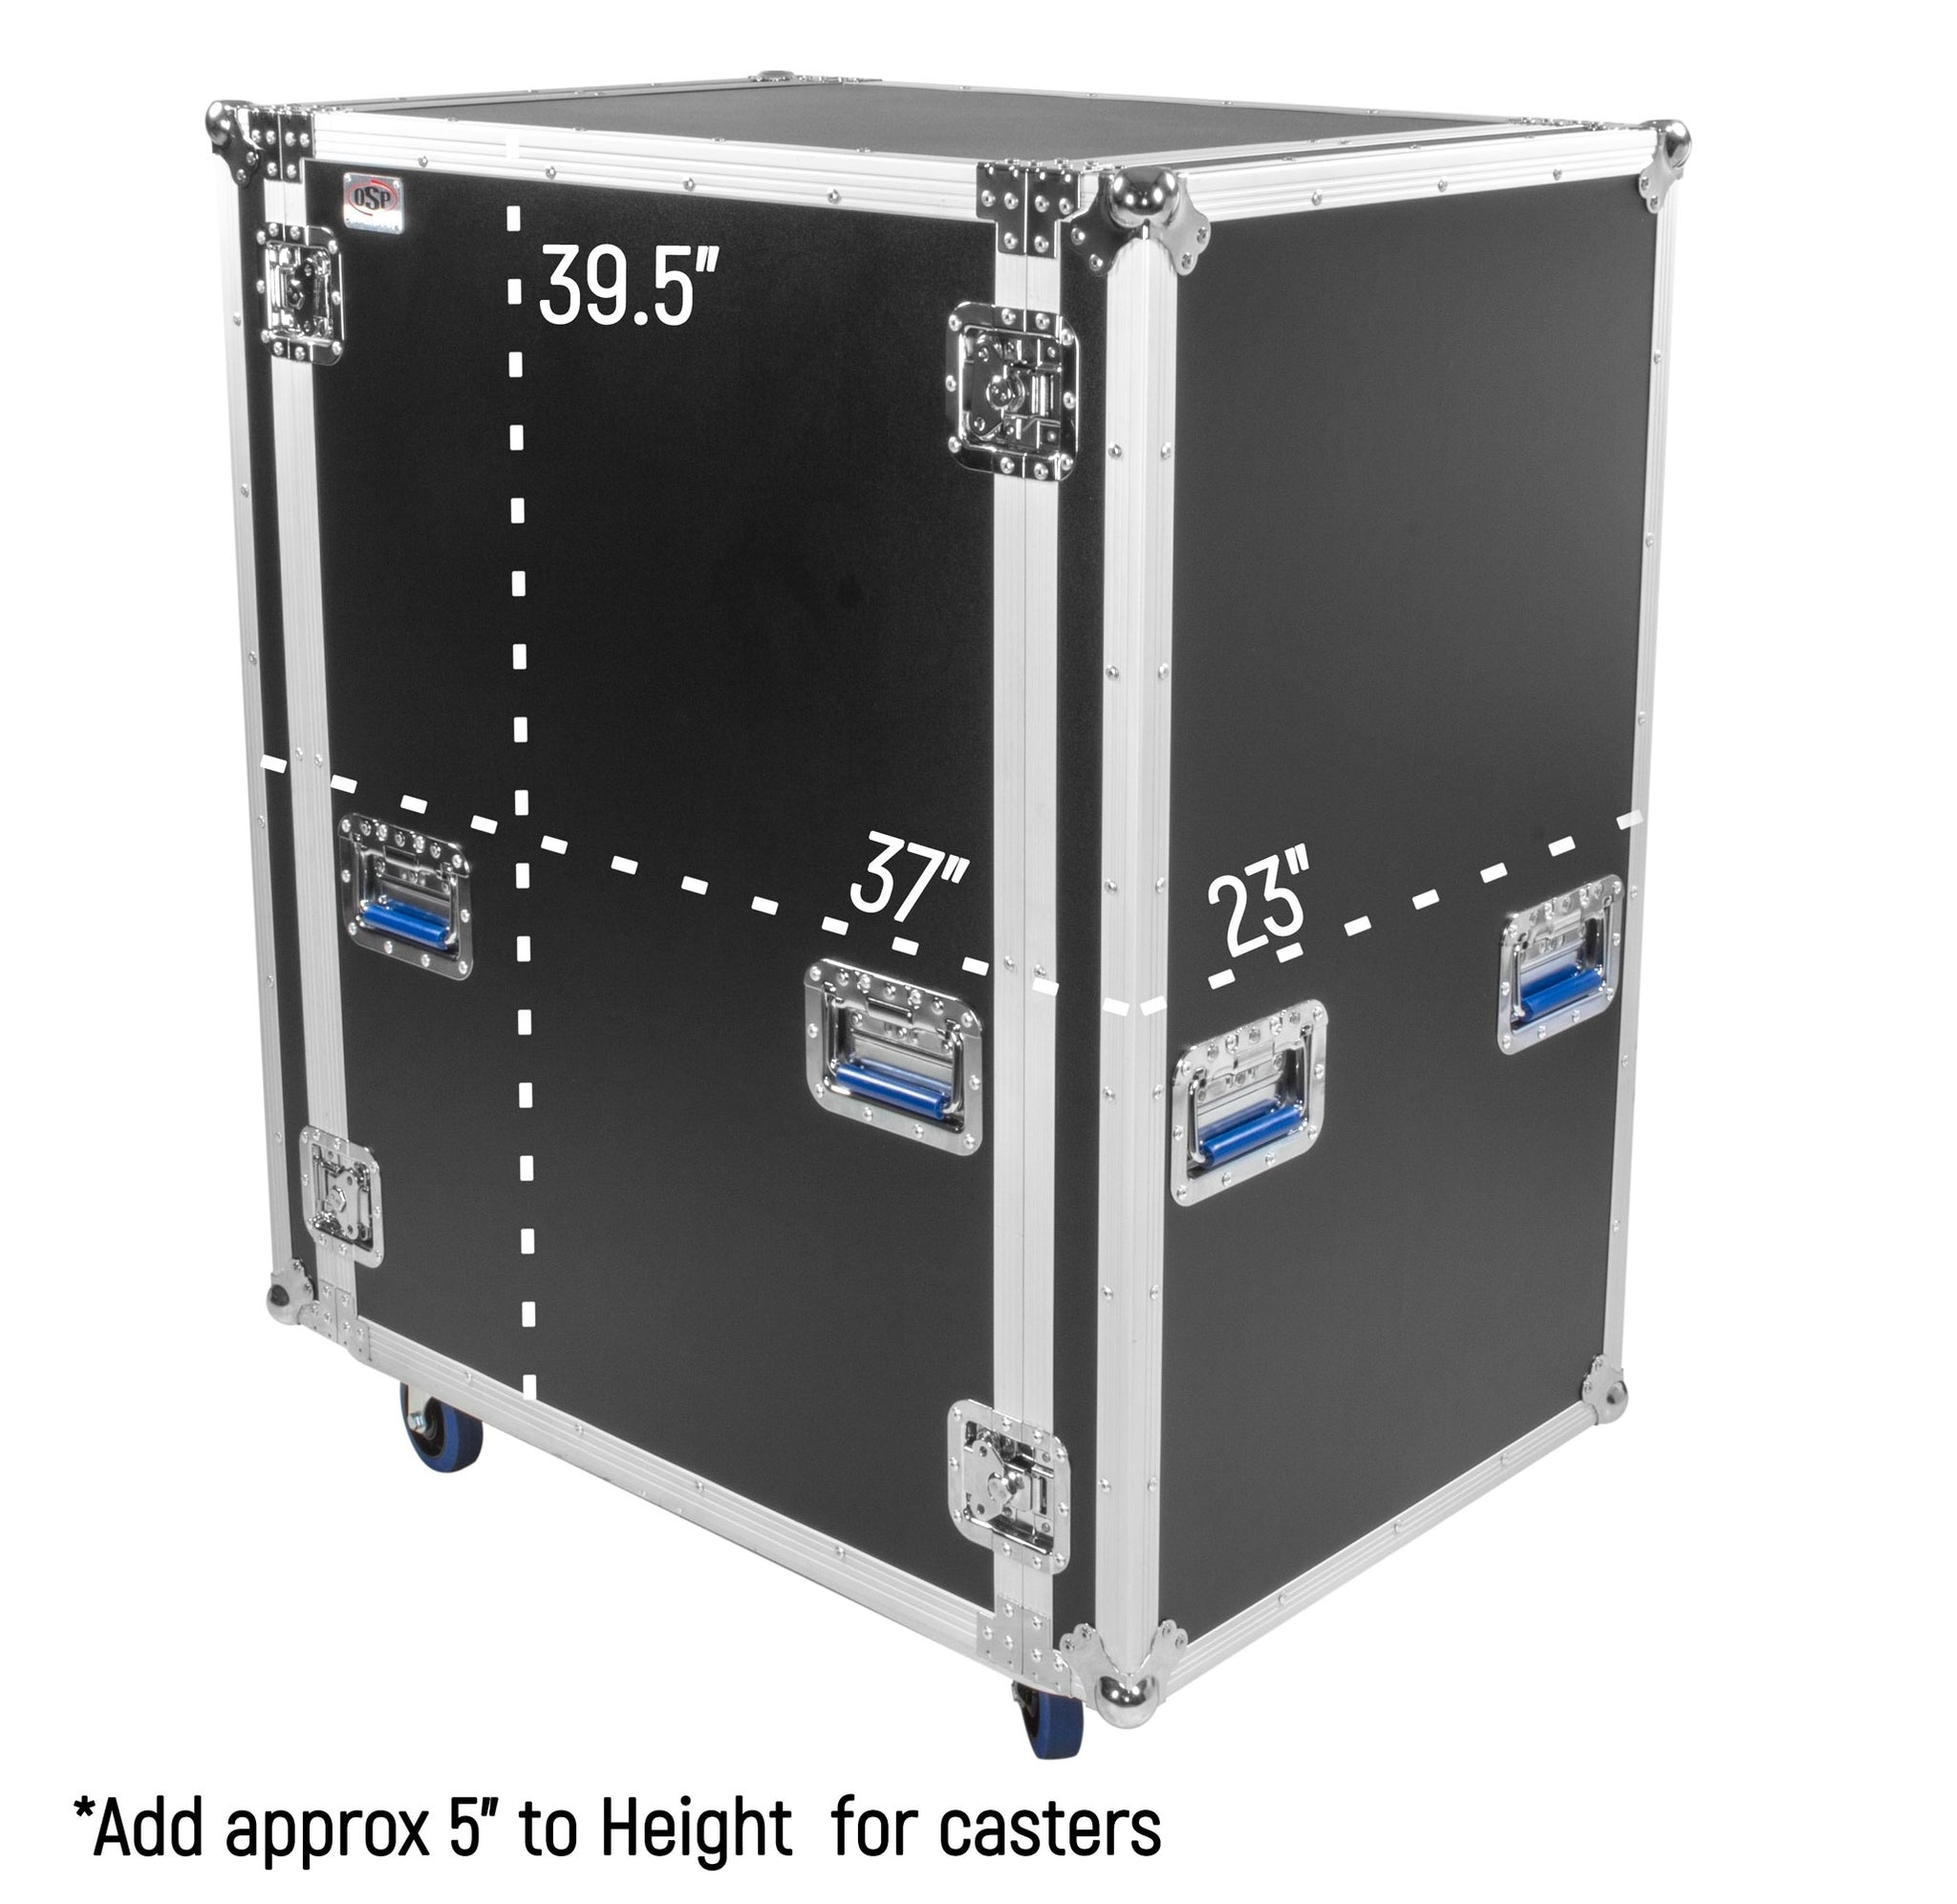 OSP SC20U-28 20 Space ATA Shock Amp Rack Case w/Casters